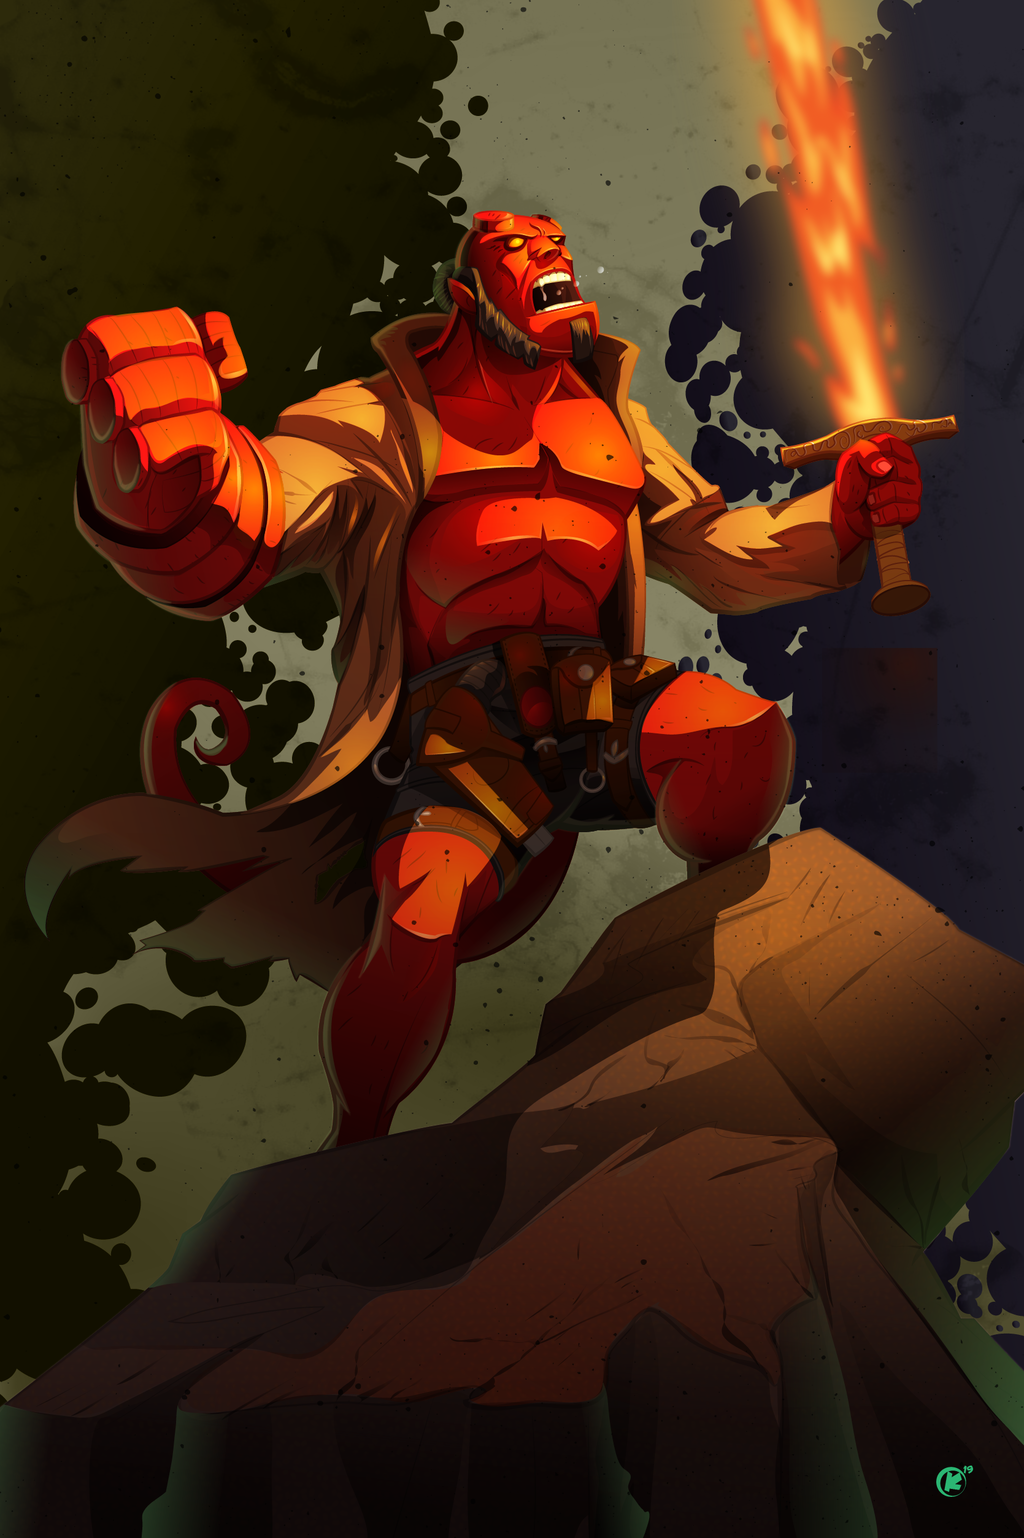 Hellboy fanart created in adobe illustrator